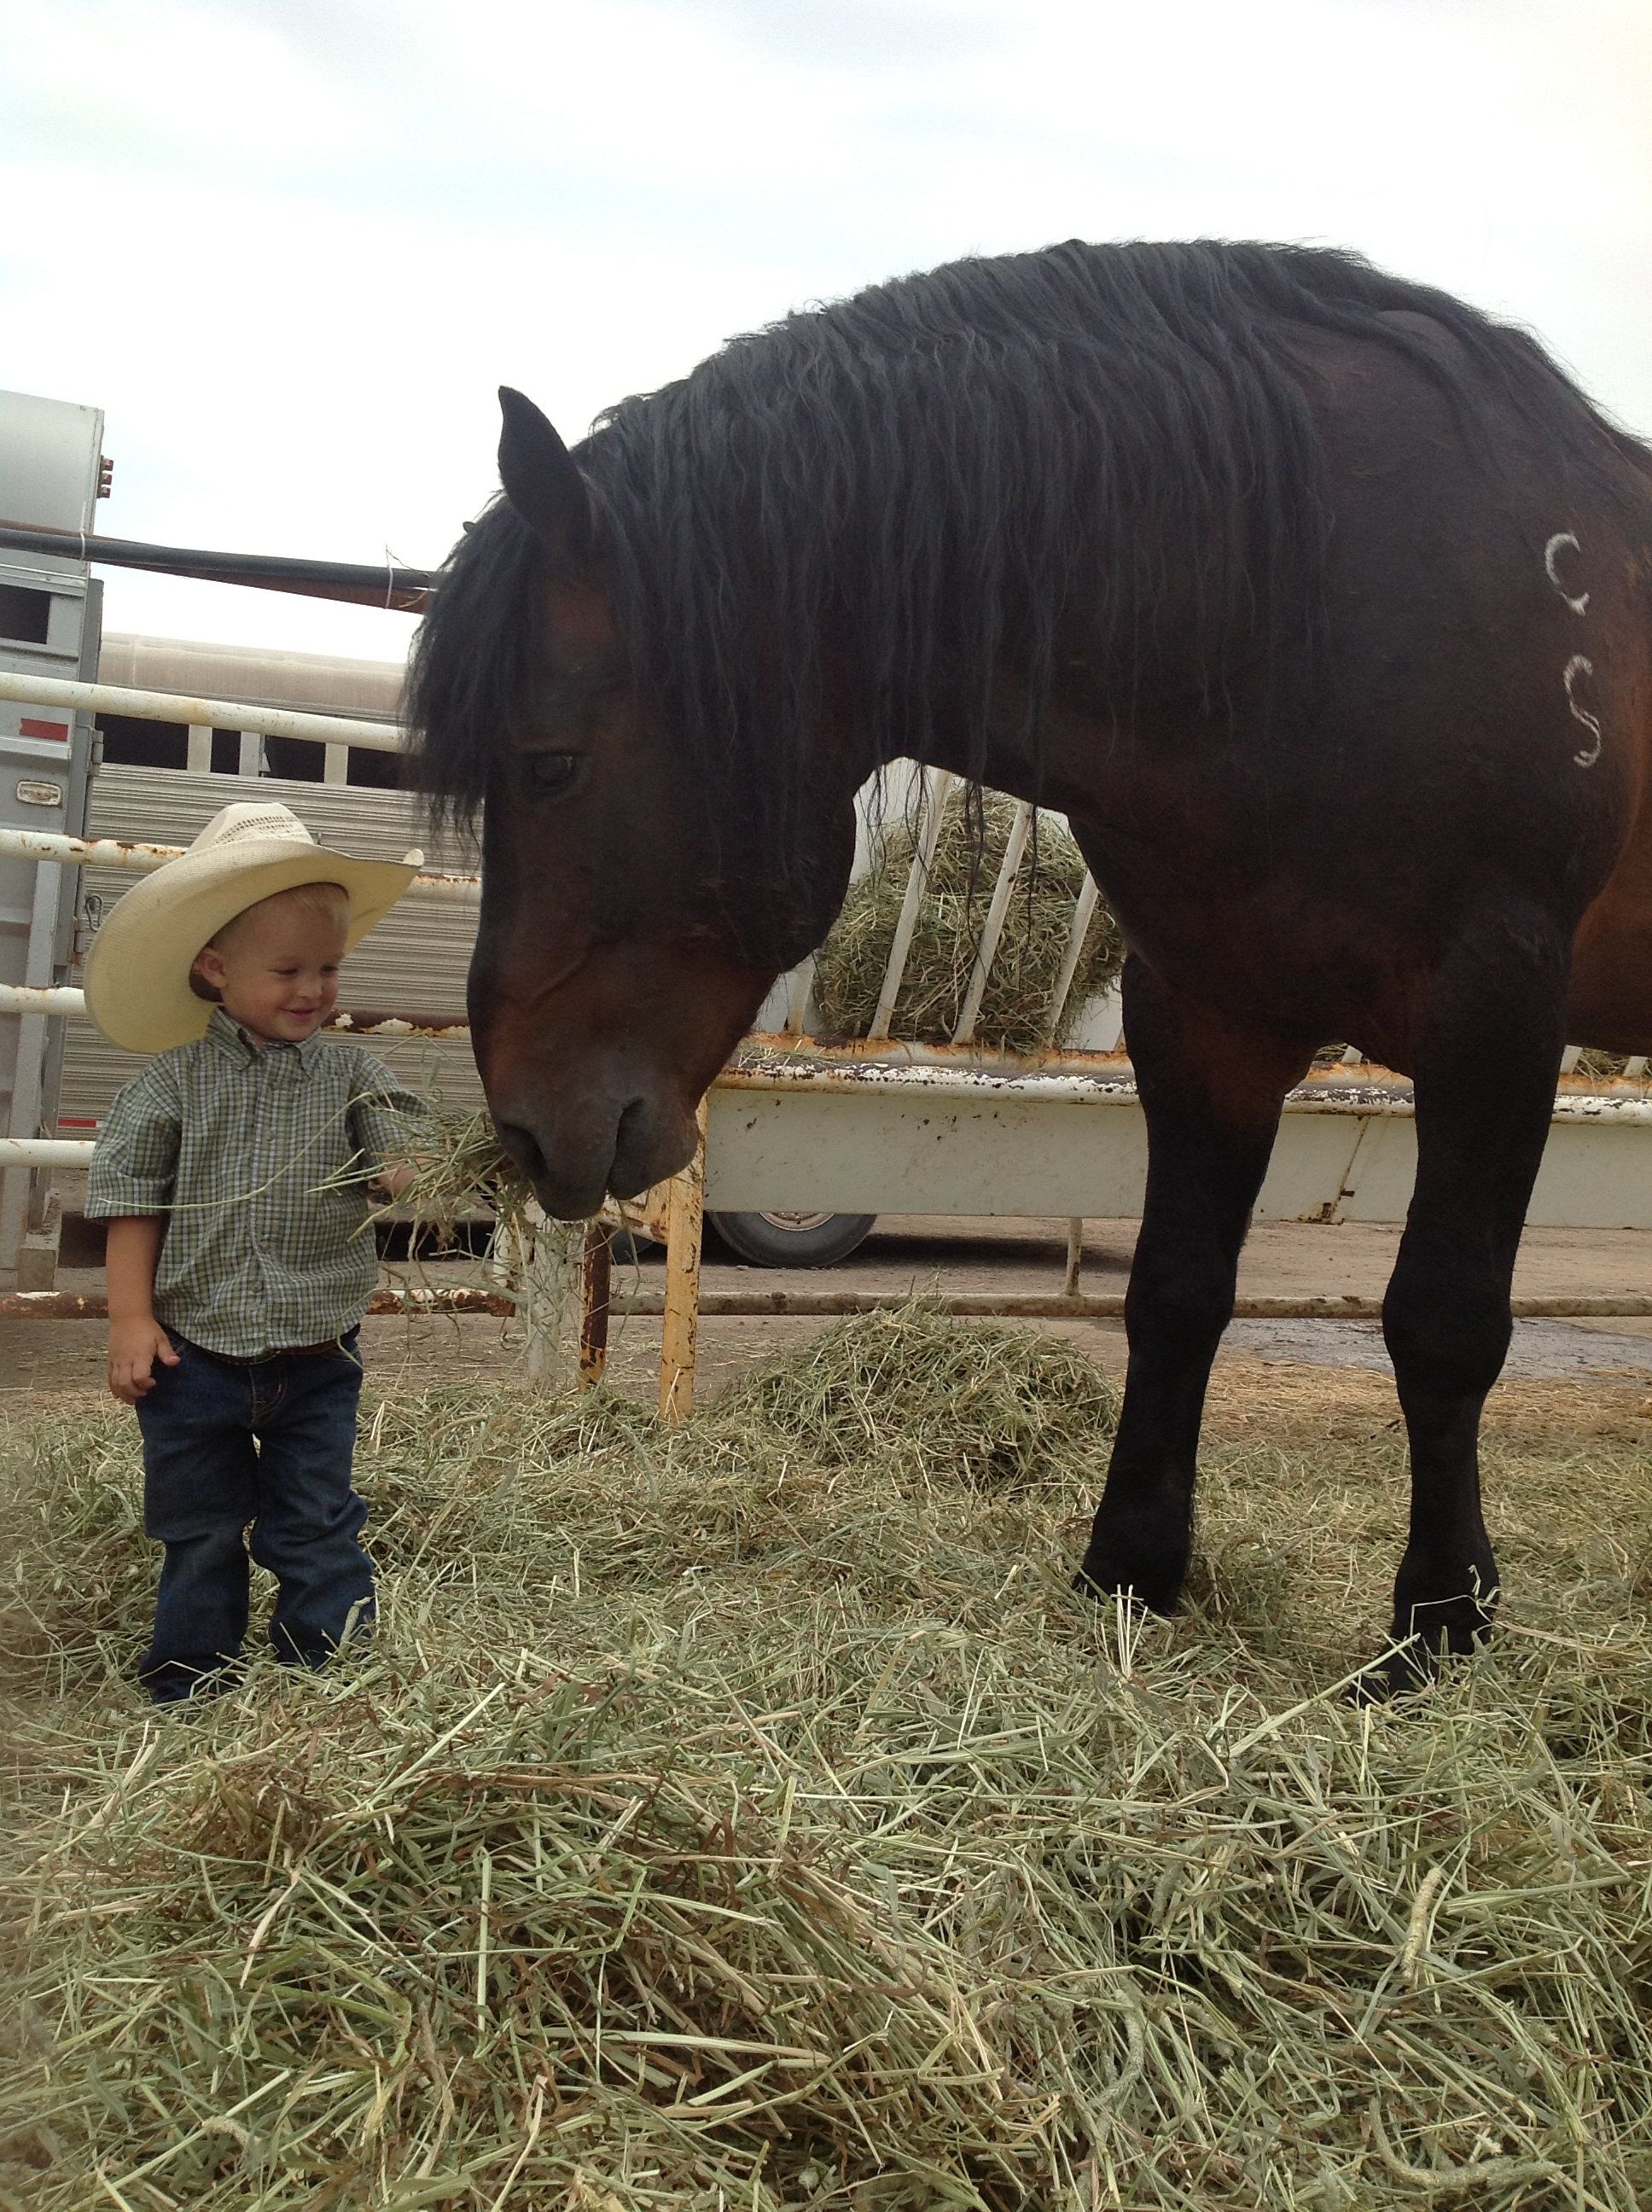 Calgary Stampede Inducted Into The Ellensburg Rodeo Hall